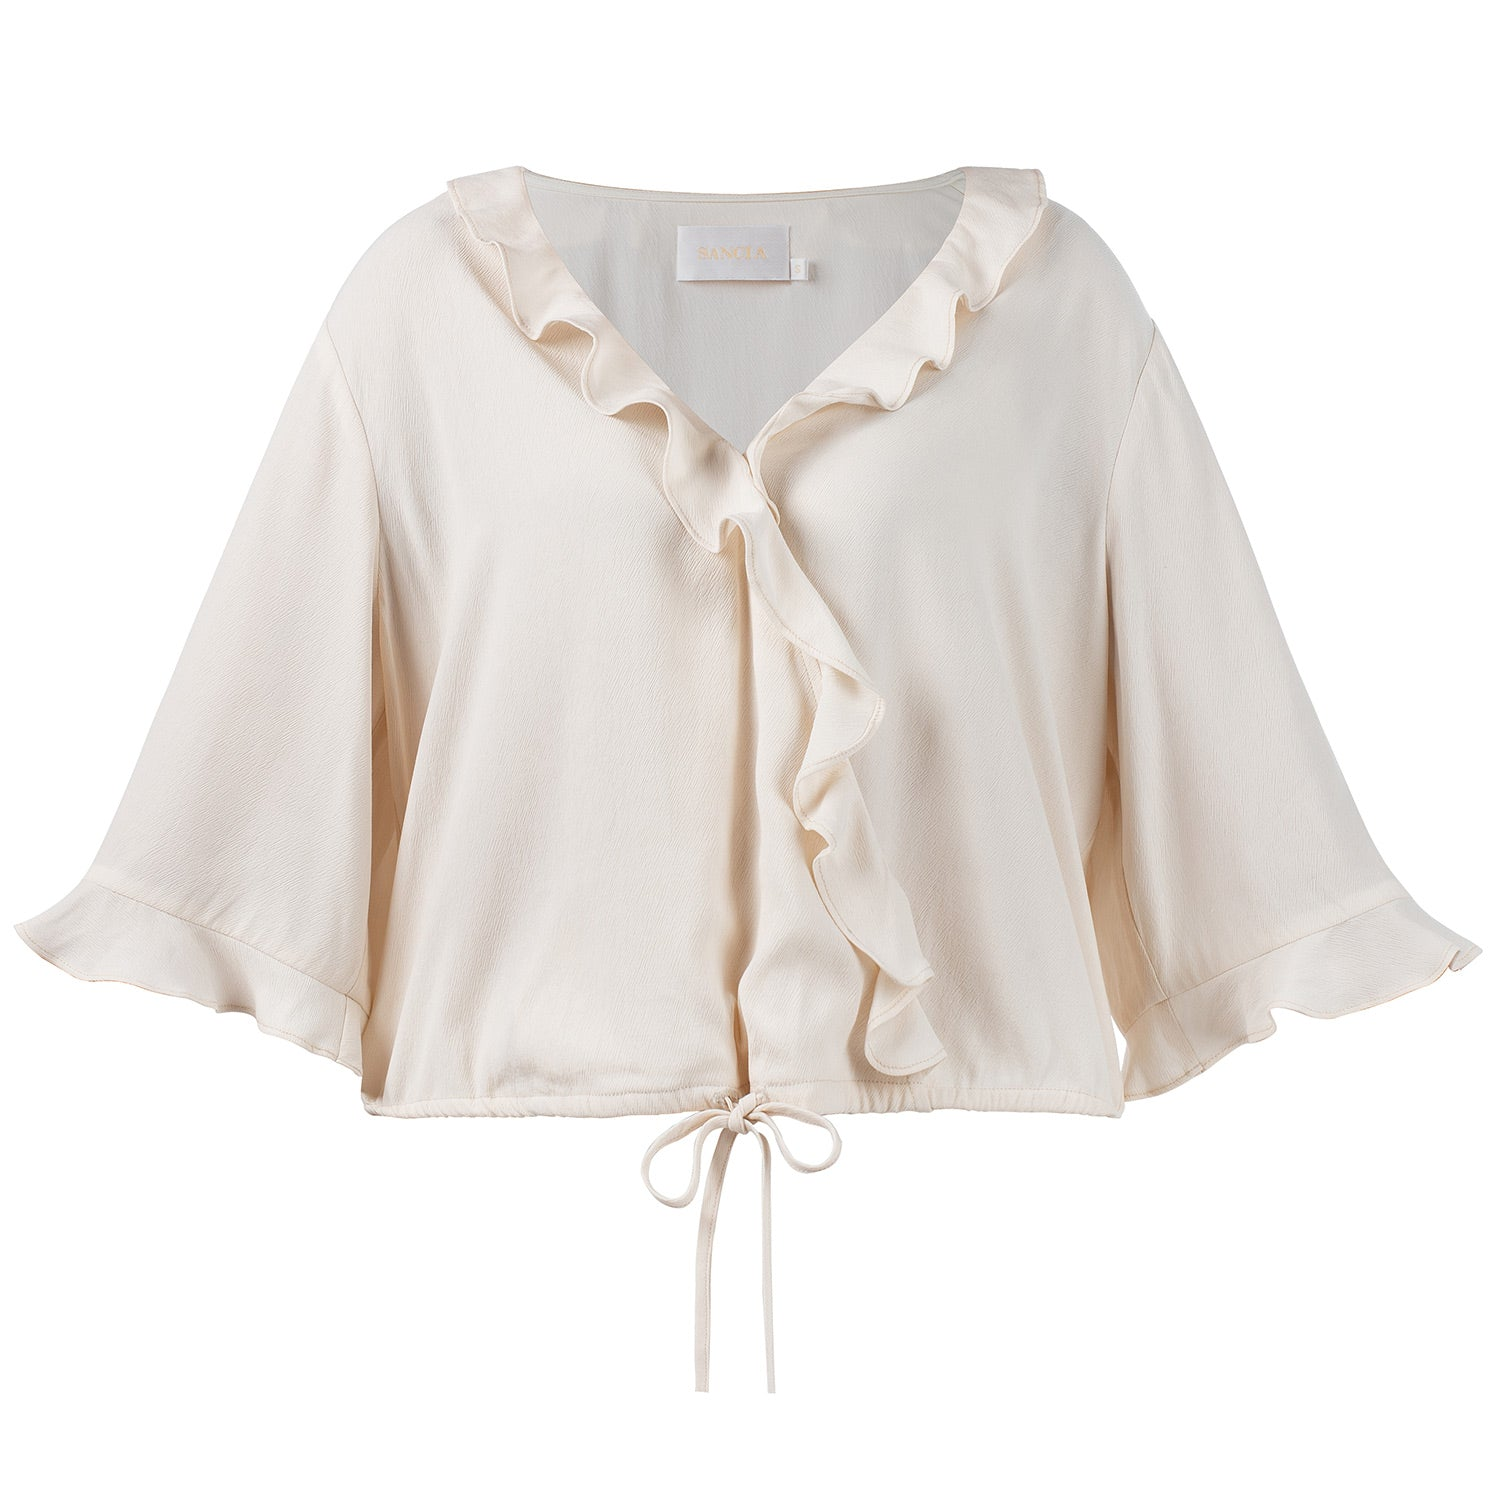 THE SISTINE BLOUSE